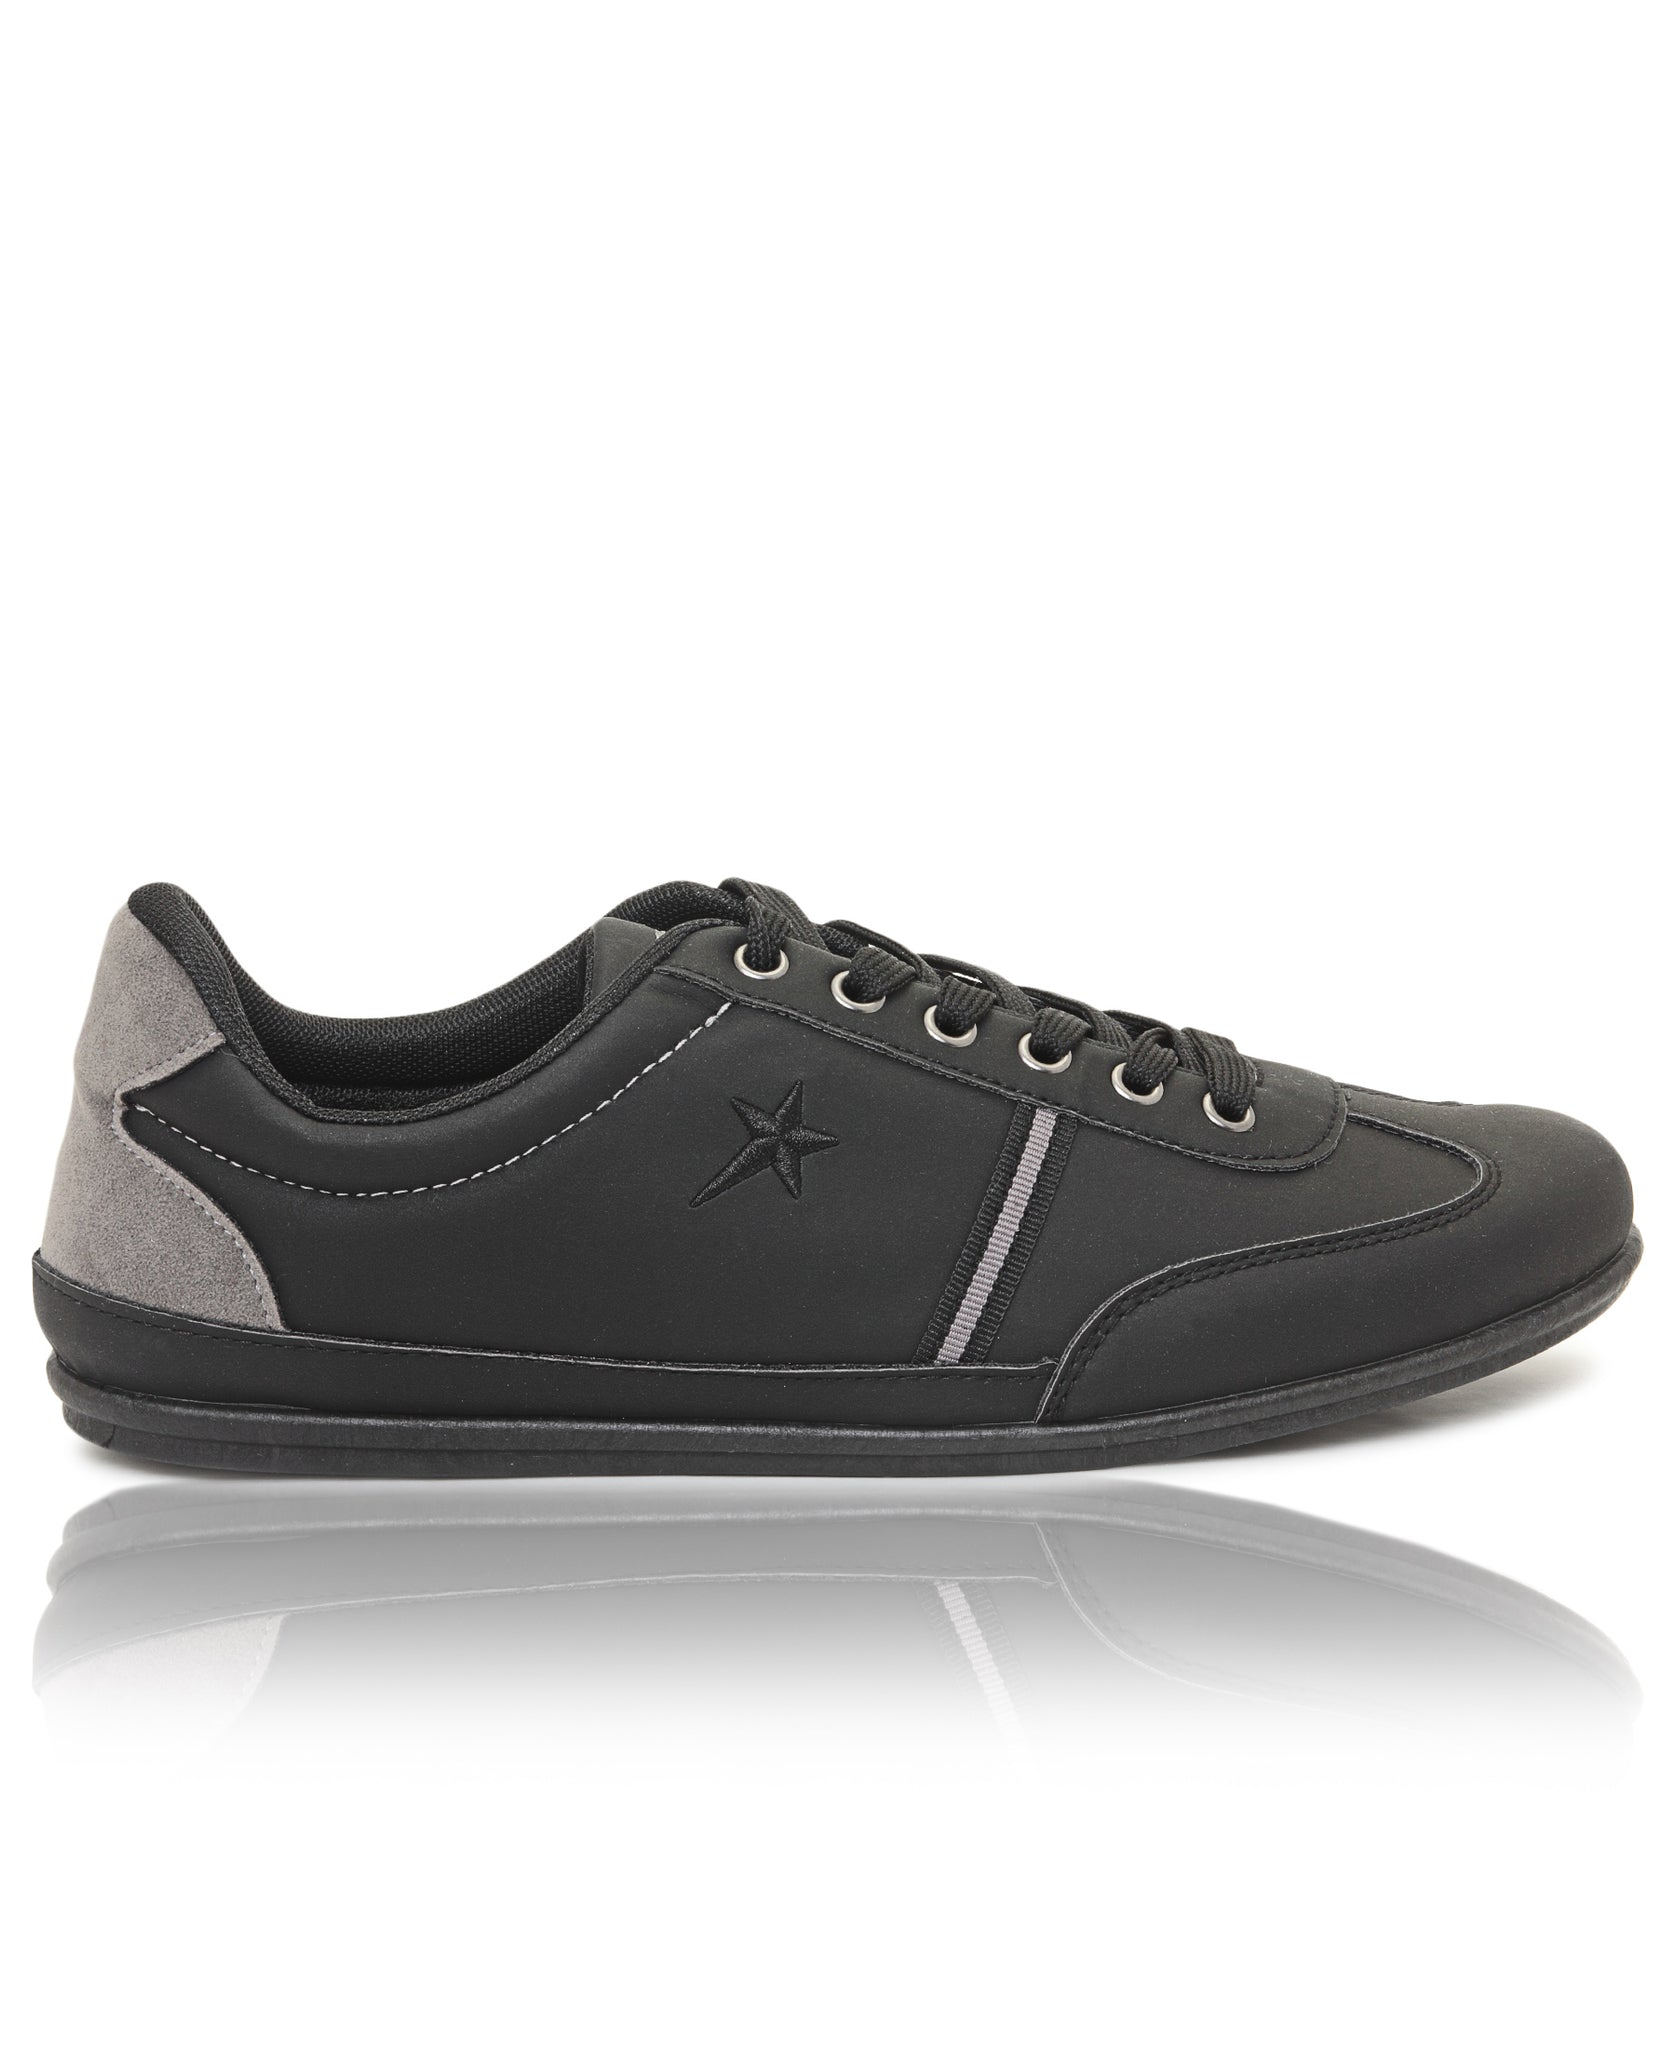 Men's Carter Sneakers - Black